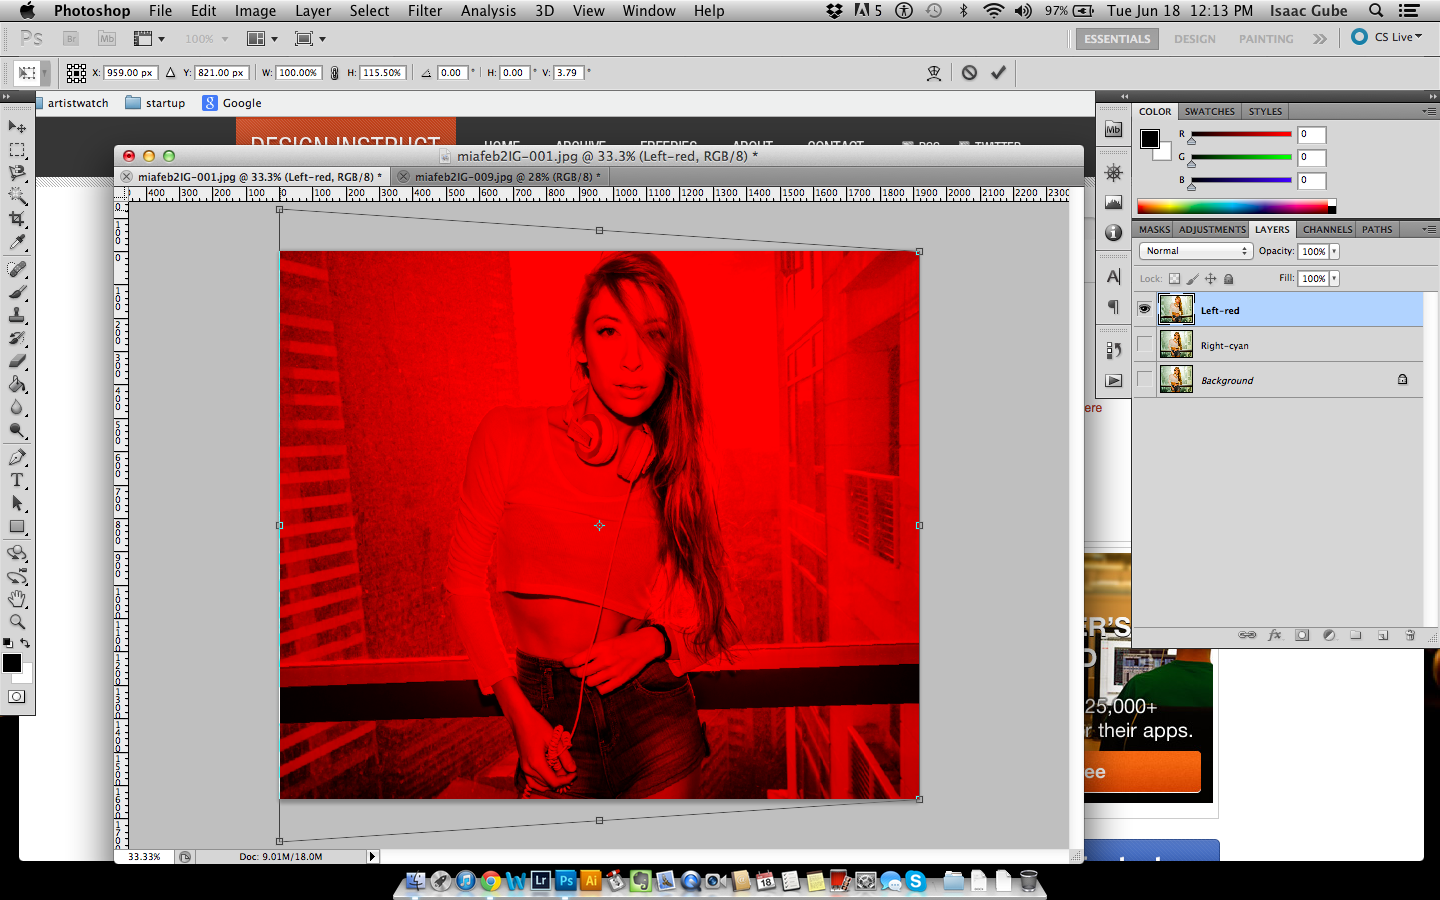 How to Create 3D Anaglyph Images in Photoshop